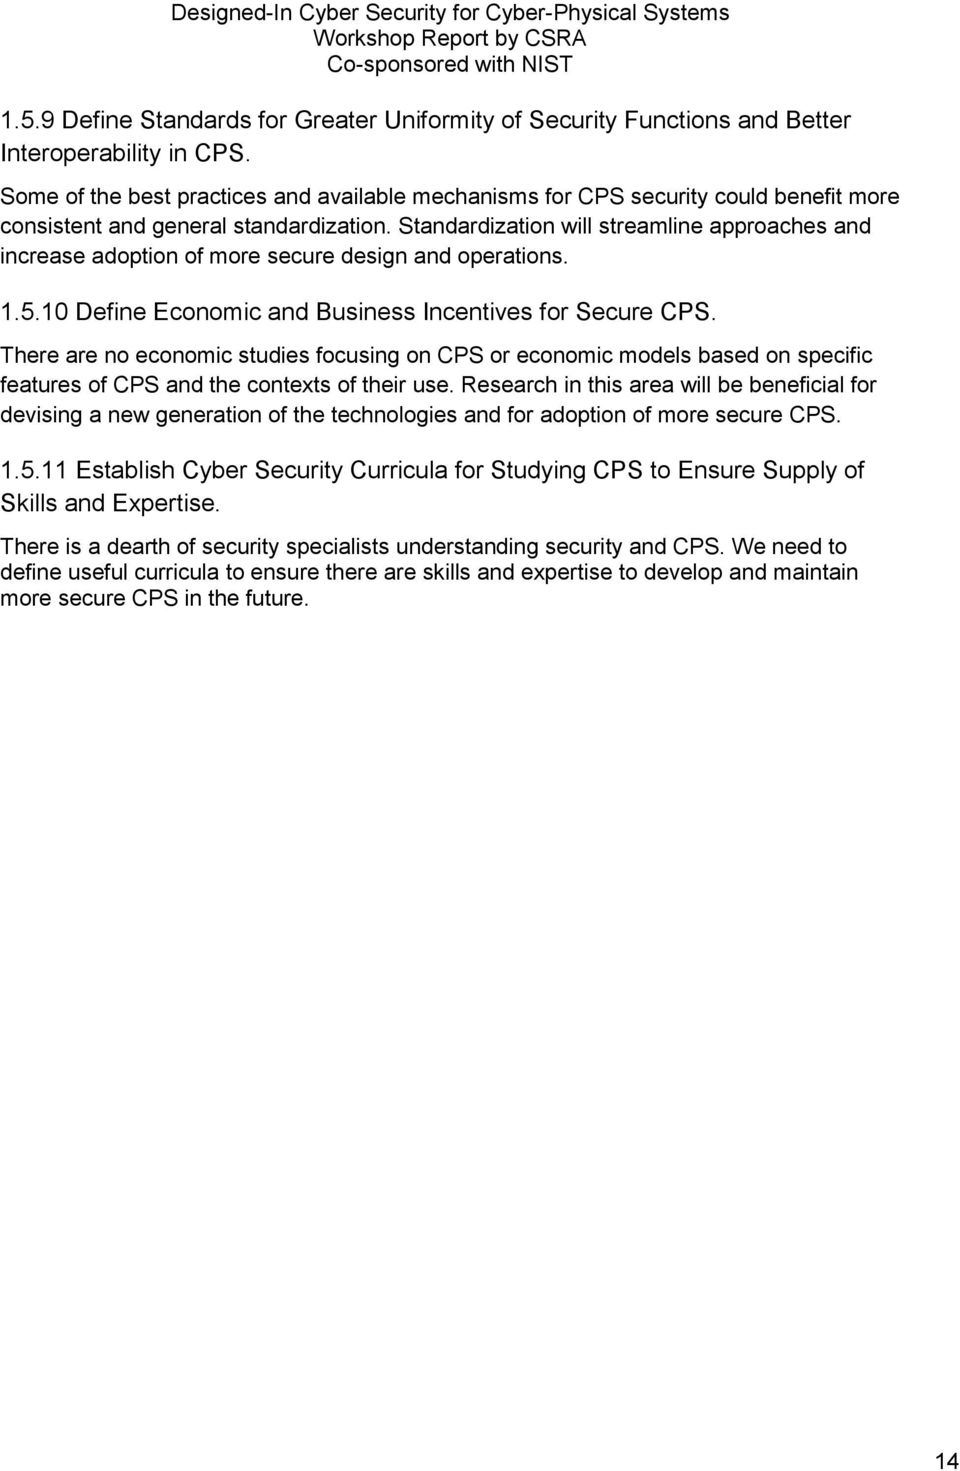 Standardization will streamline approaches and increase adoption of more secure design and operations. 1.5.10 Define Economic and Business Incentives for Secure CPS.